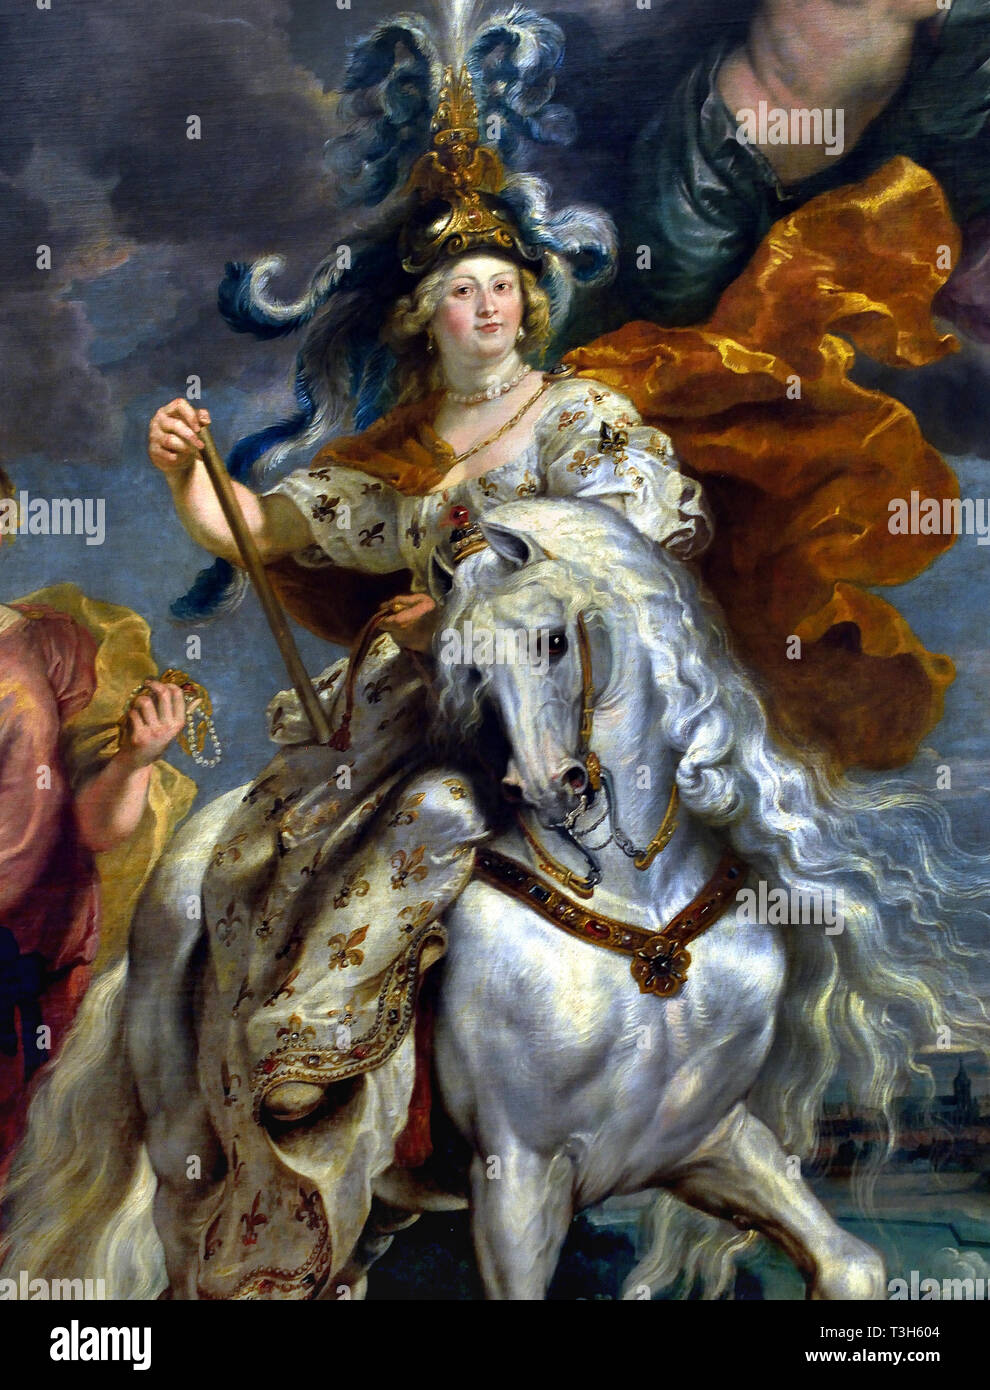 The Regent Militant: The Victory at Jülich  - The Marie de' Medici Cycle 1622-1624  by Peter Paul Rubens commissioned by Queen Marie de' Medici, widow of King Henry IV of France, for the Luxembourg Palace in Paris, - Stock Image